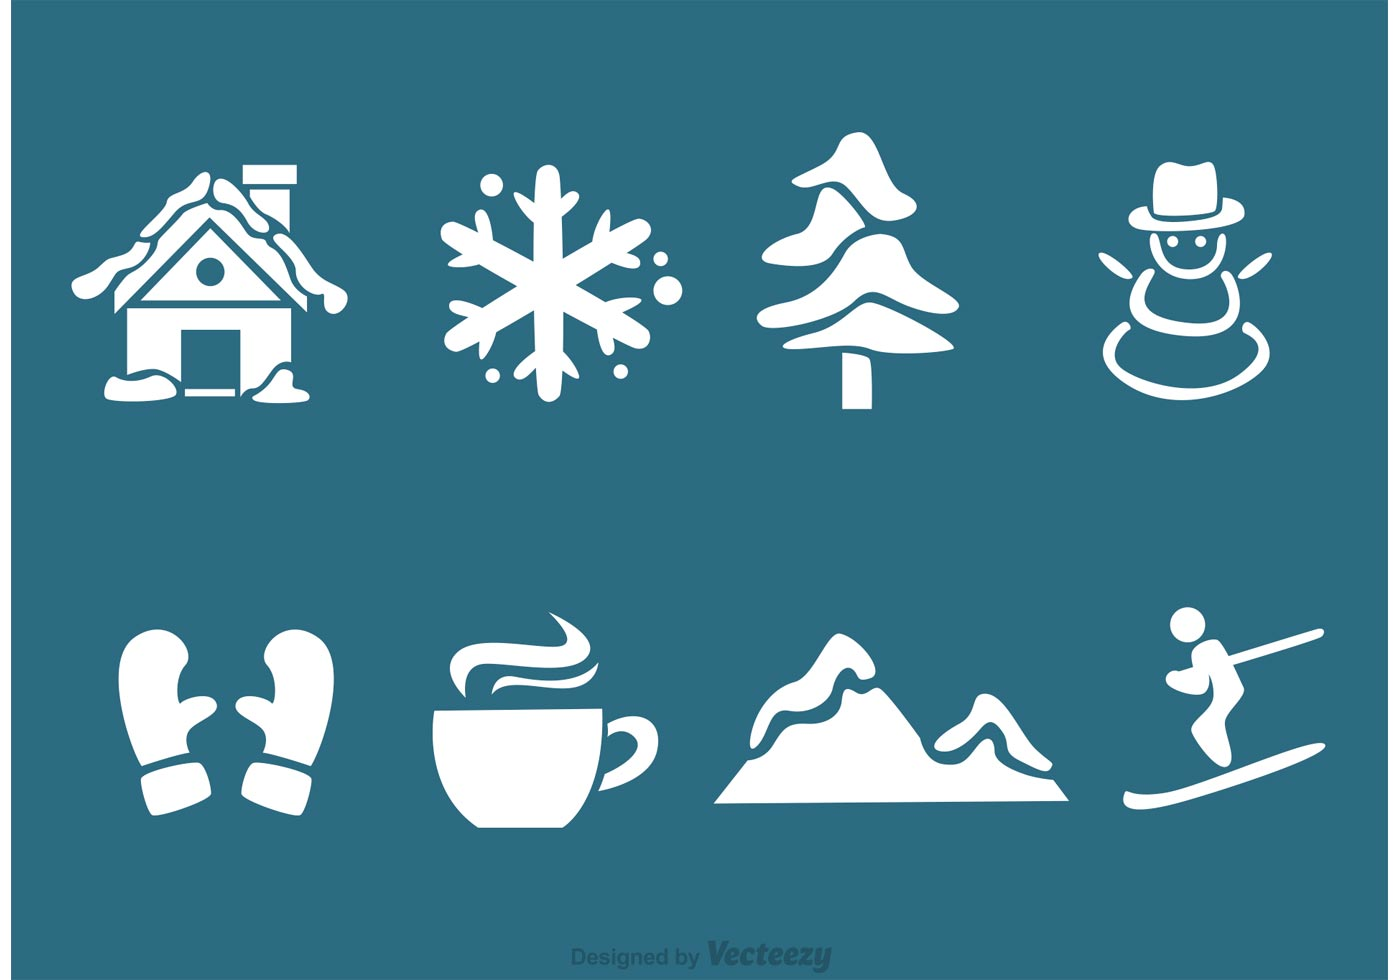 winter silhouette vector icons download free vector art. Black Bedroom Furniture Sets. Home Design Ideas